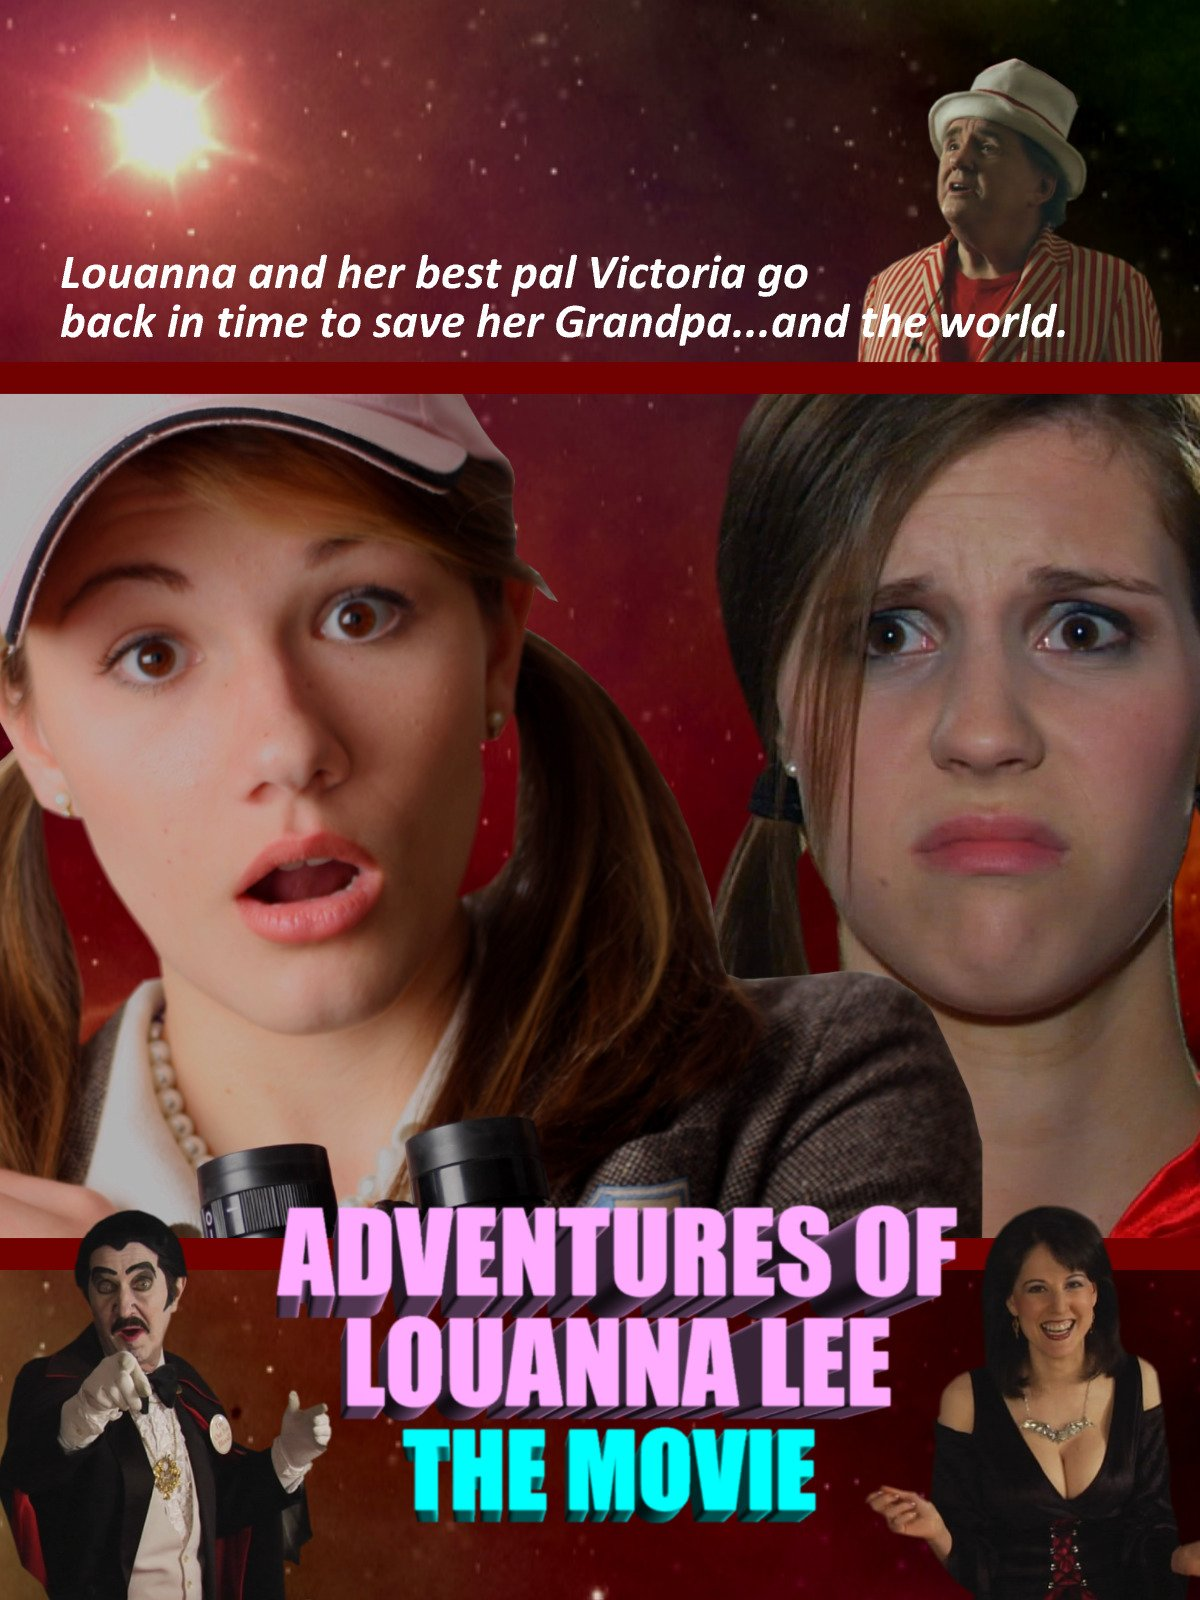 Adventures of Louanna Lee